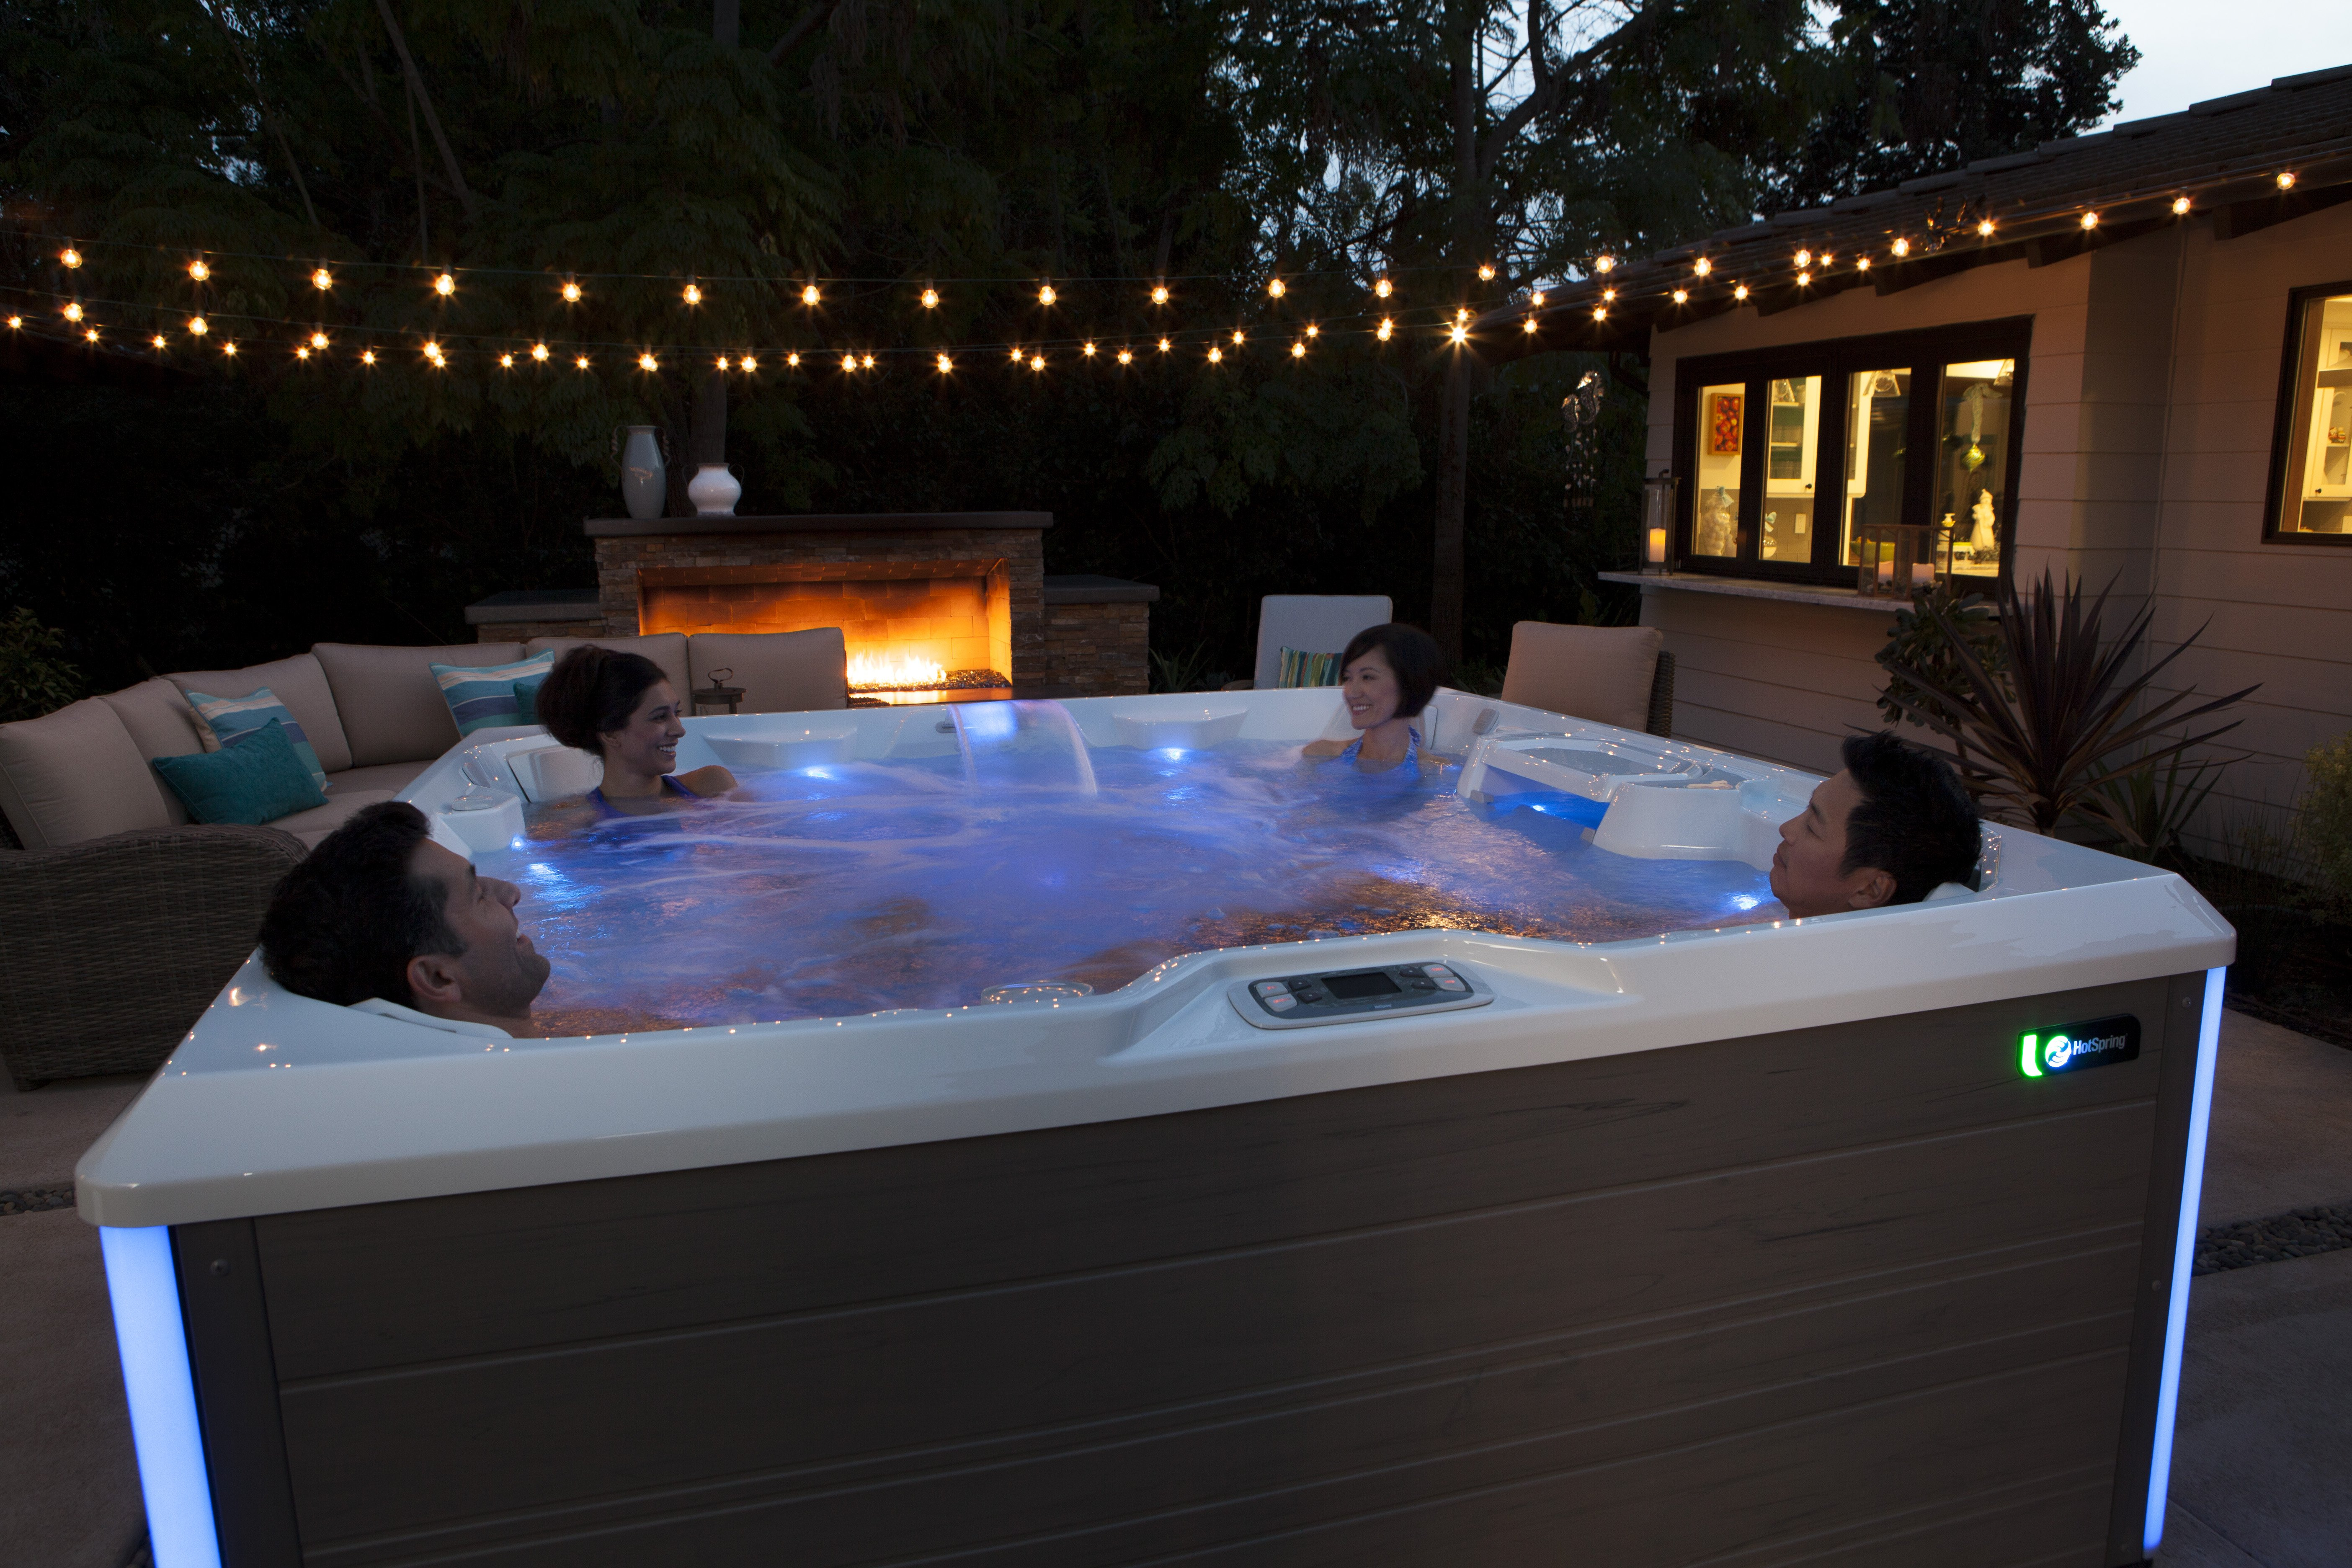 Heavenly Times in a Hot Spring Hot Tub